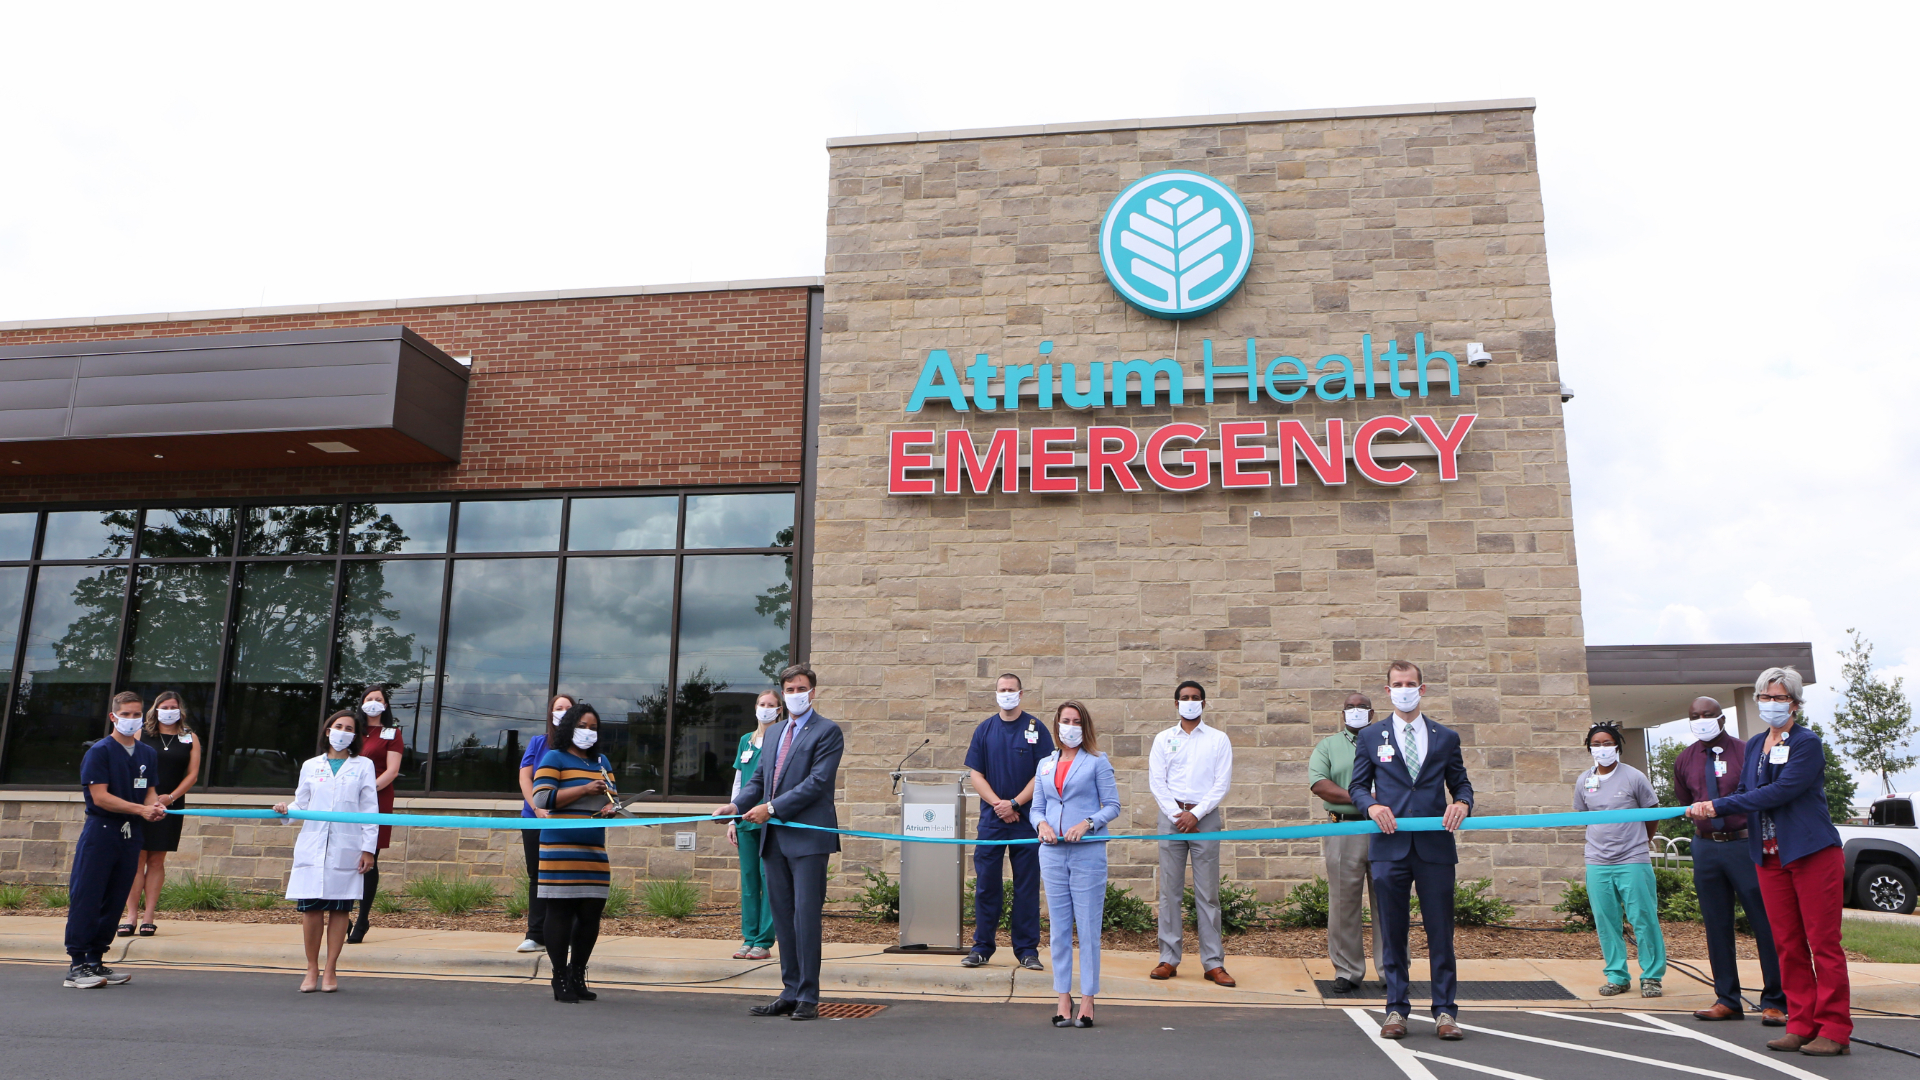 New emergency department location brings expert emergency care closer to home for residents of South Mecklenburg and Union County